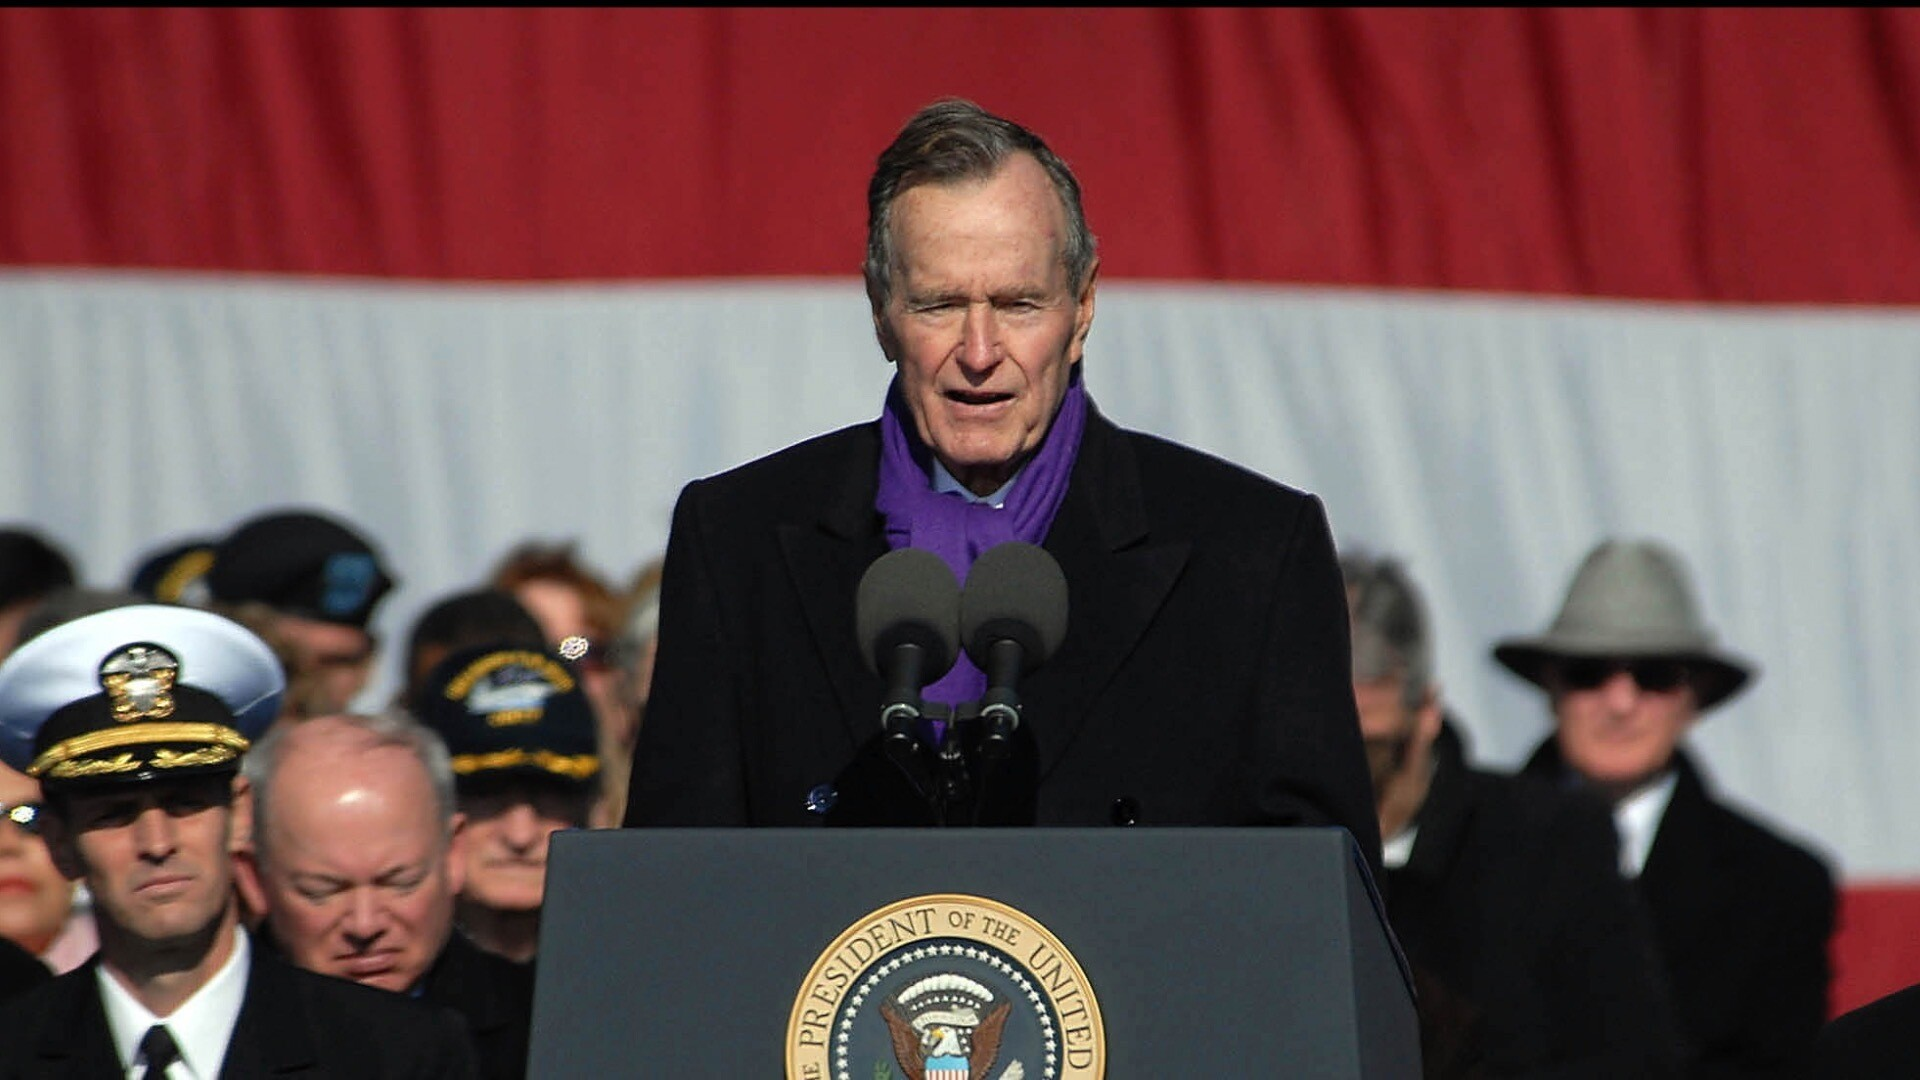 Photos: George H.W. Bush: a legacy of service with deep connections to the Navy and HamptonRoads